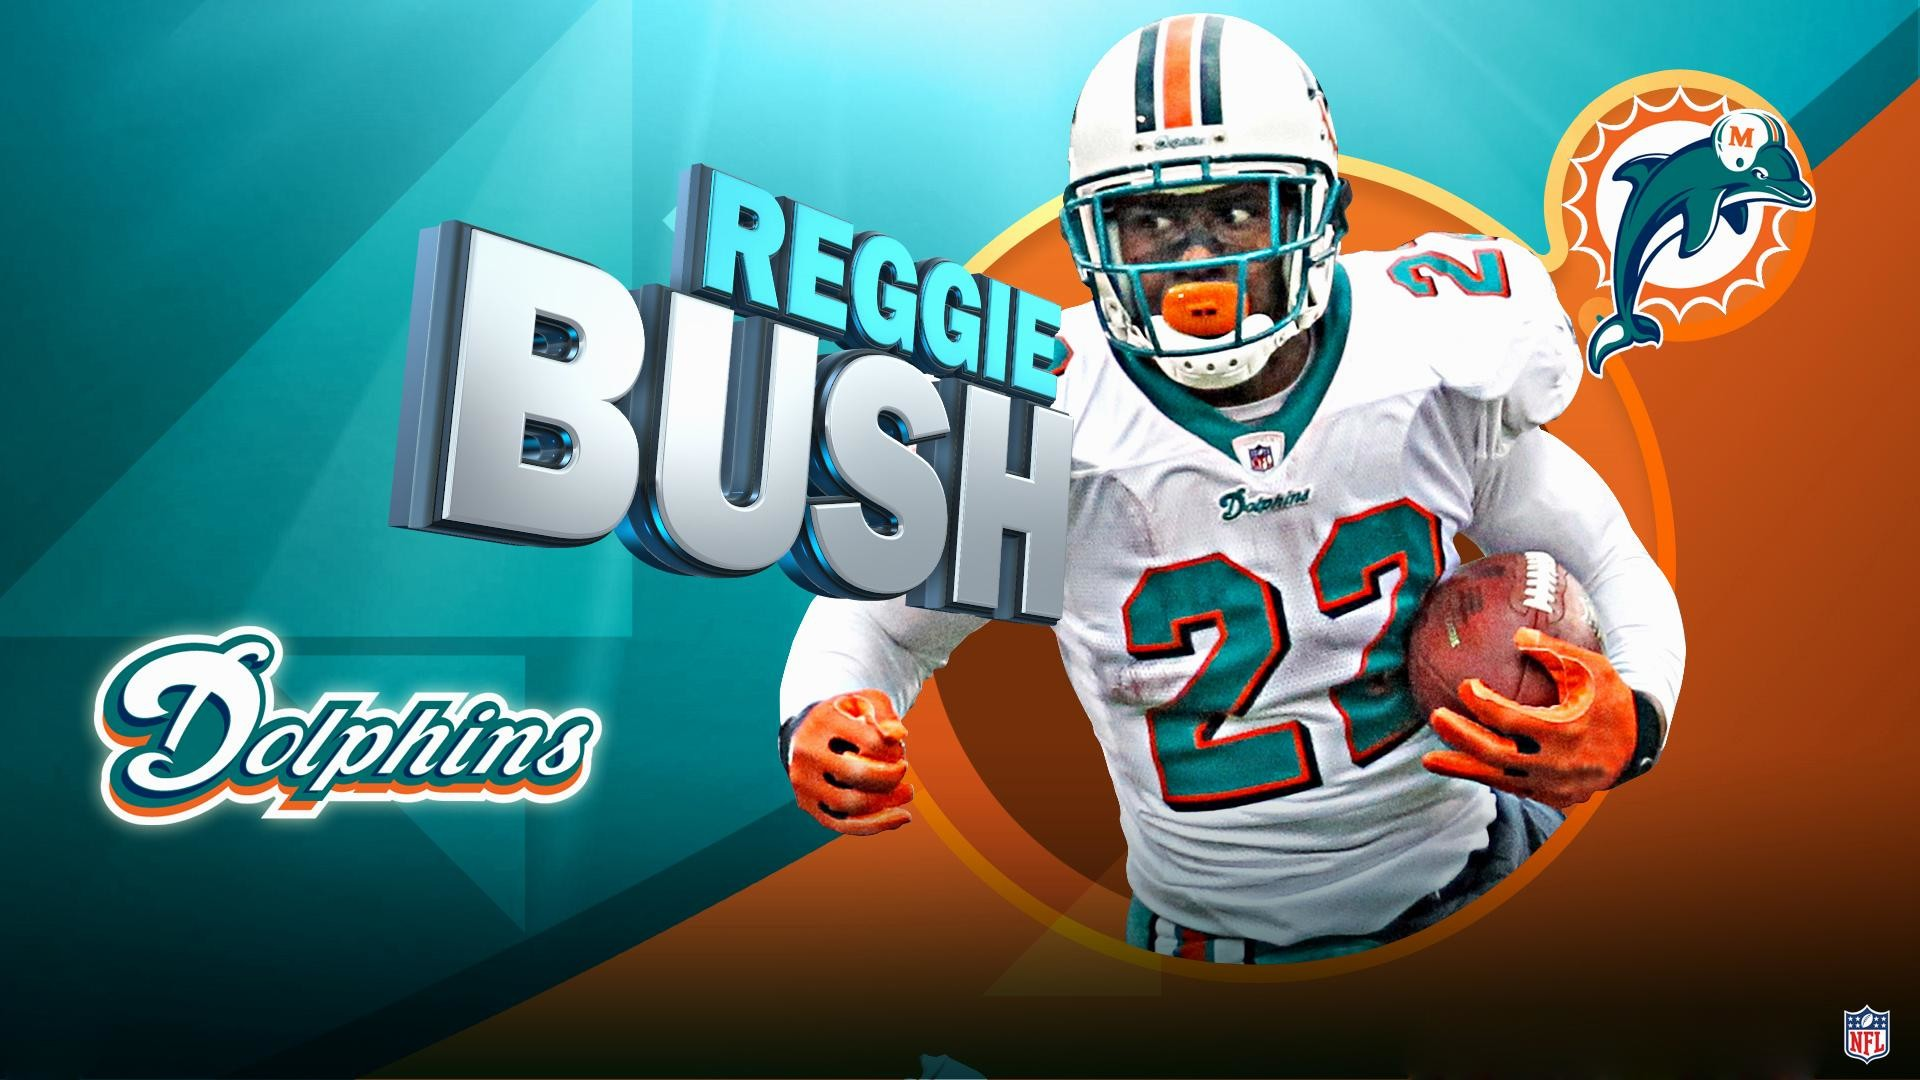 Wallpapers-Nfl-Miami-Dolphins-Images